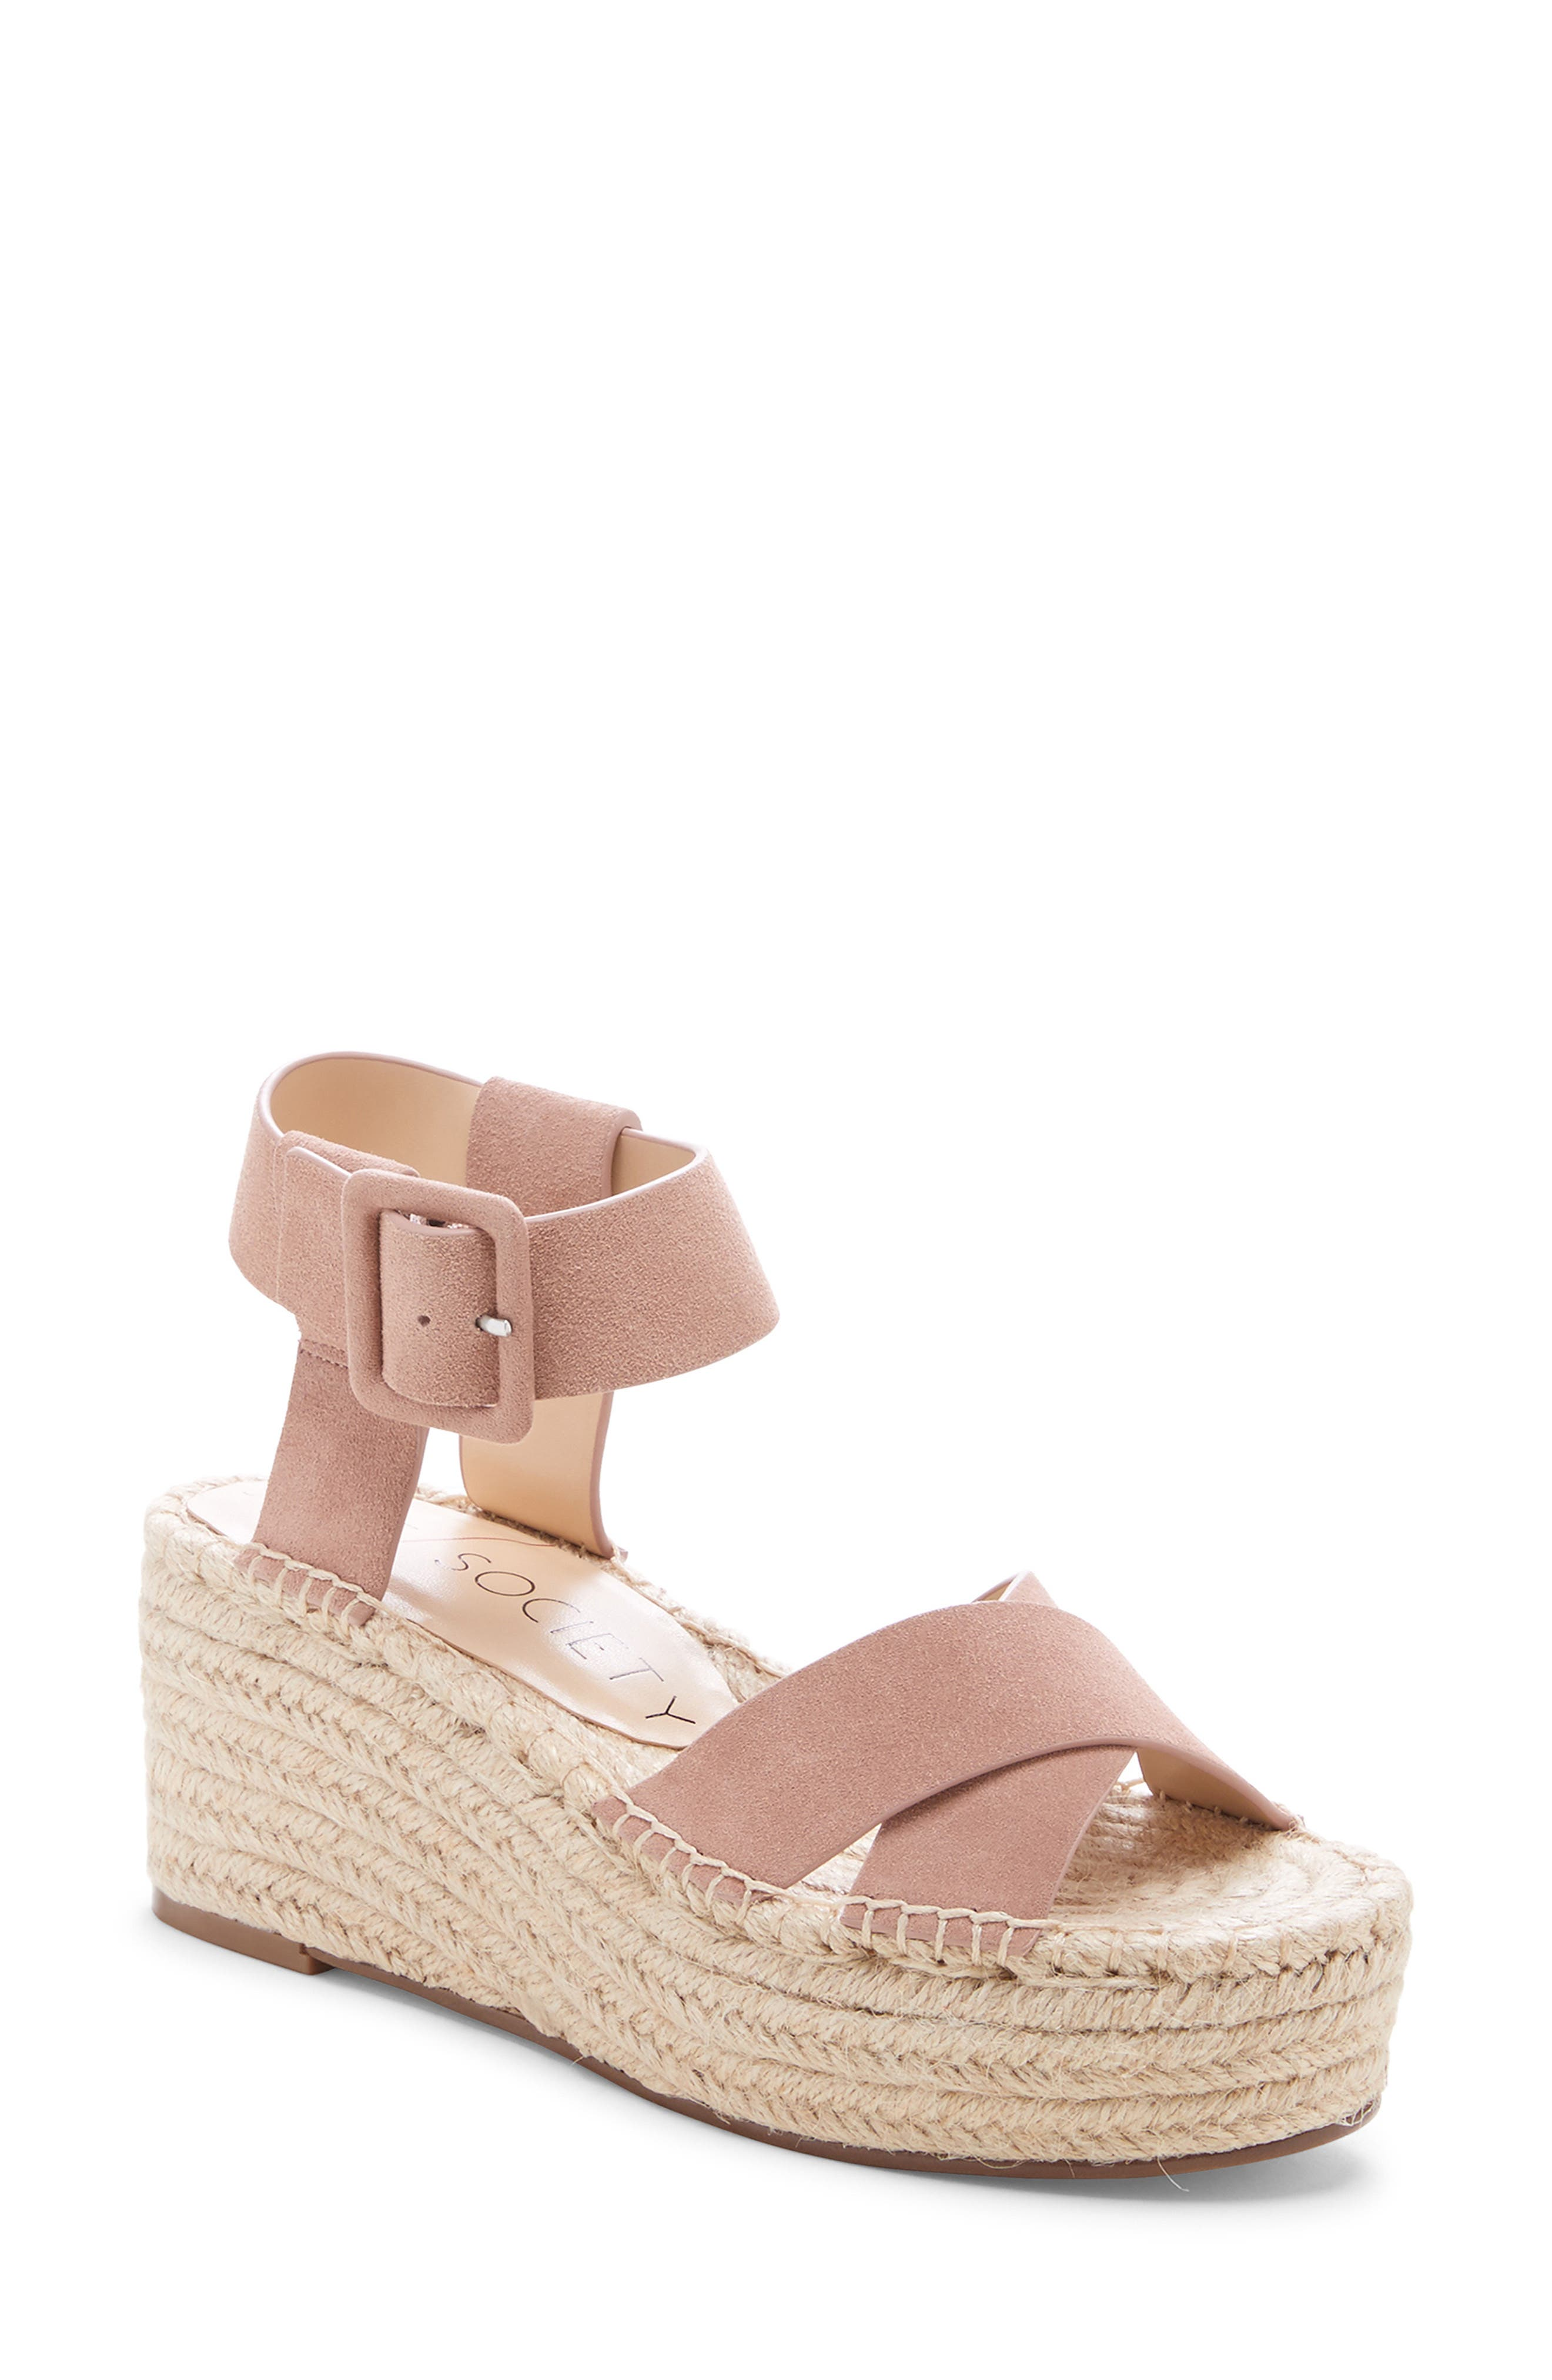 SOLE SOCIETY, Audrina Platform Espadrille Sandal, Main thumbnail 1, color, DUSTY ROSE SUEDE